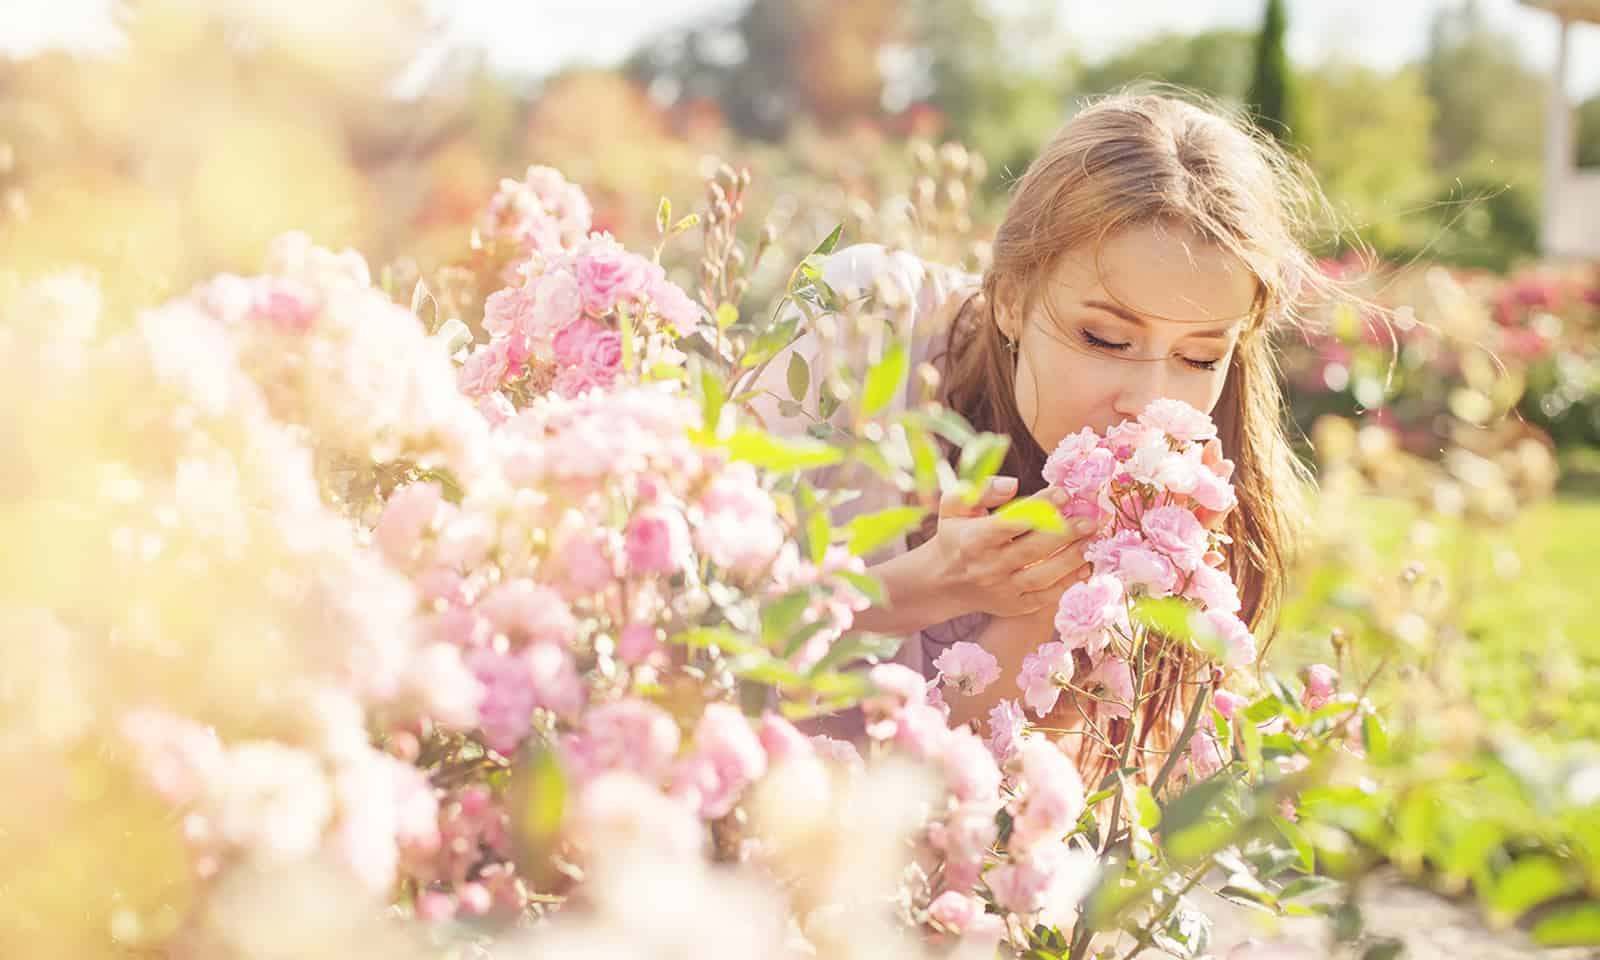 Scents-to-Help-You-Evoke-the-Perfect-Mood-main-image